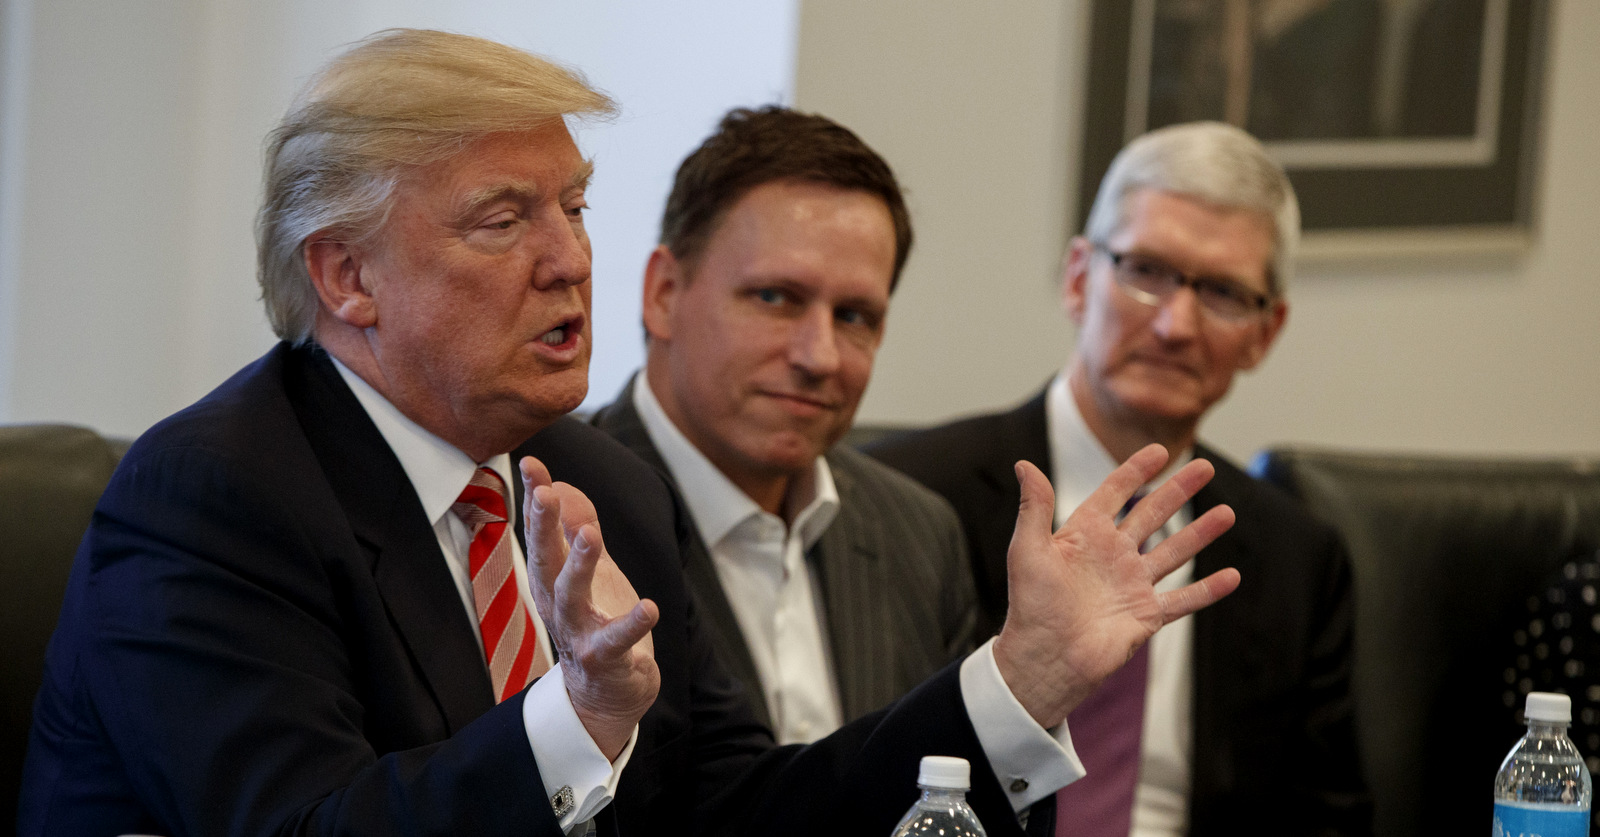 Peter Thiel founder of CIA-funded Palantir, listens as Donald Trump speaks during a meeting with tech leaders at Trump Tower in New York, Dec. 14, 2016. (AP/Evan Vucci)